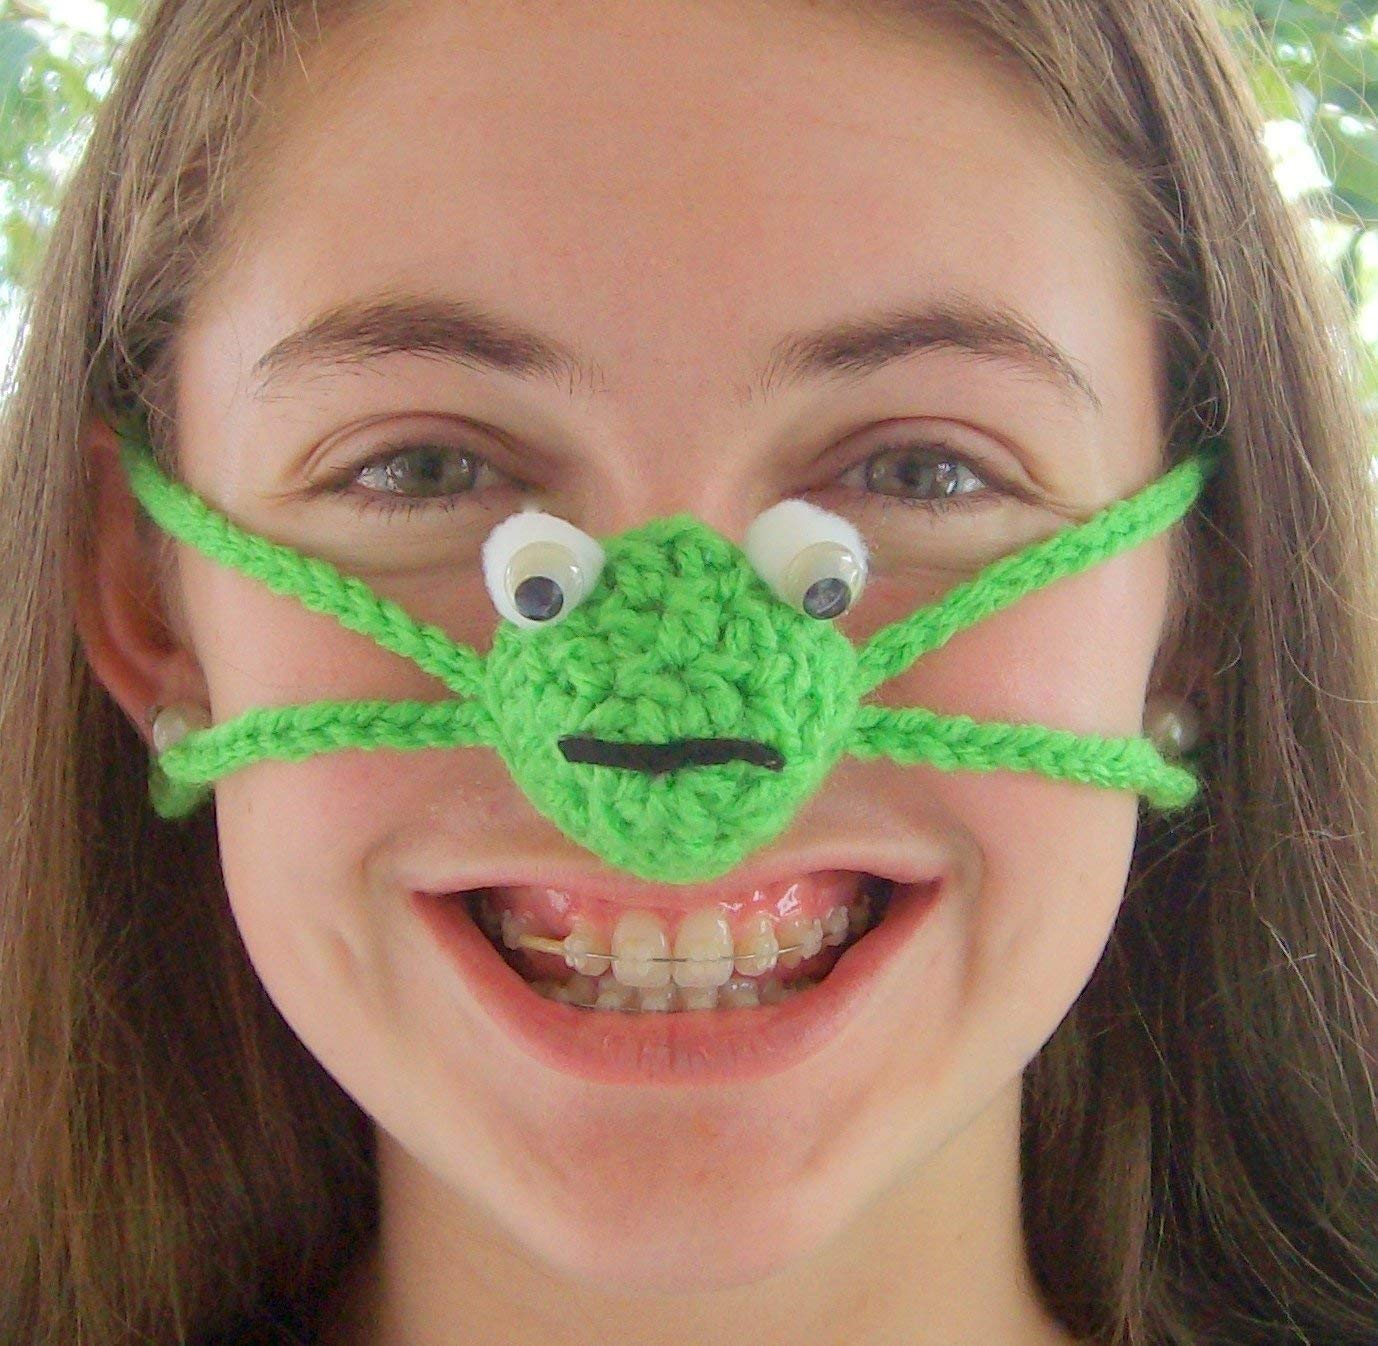 d3ac61dea314e Amazon.com  Happy Frog Nose Warmer by Aunt Marty s Original Nose Warmers   Handmade